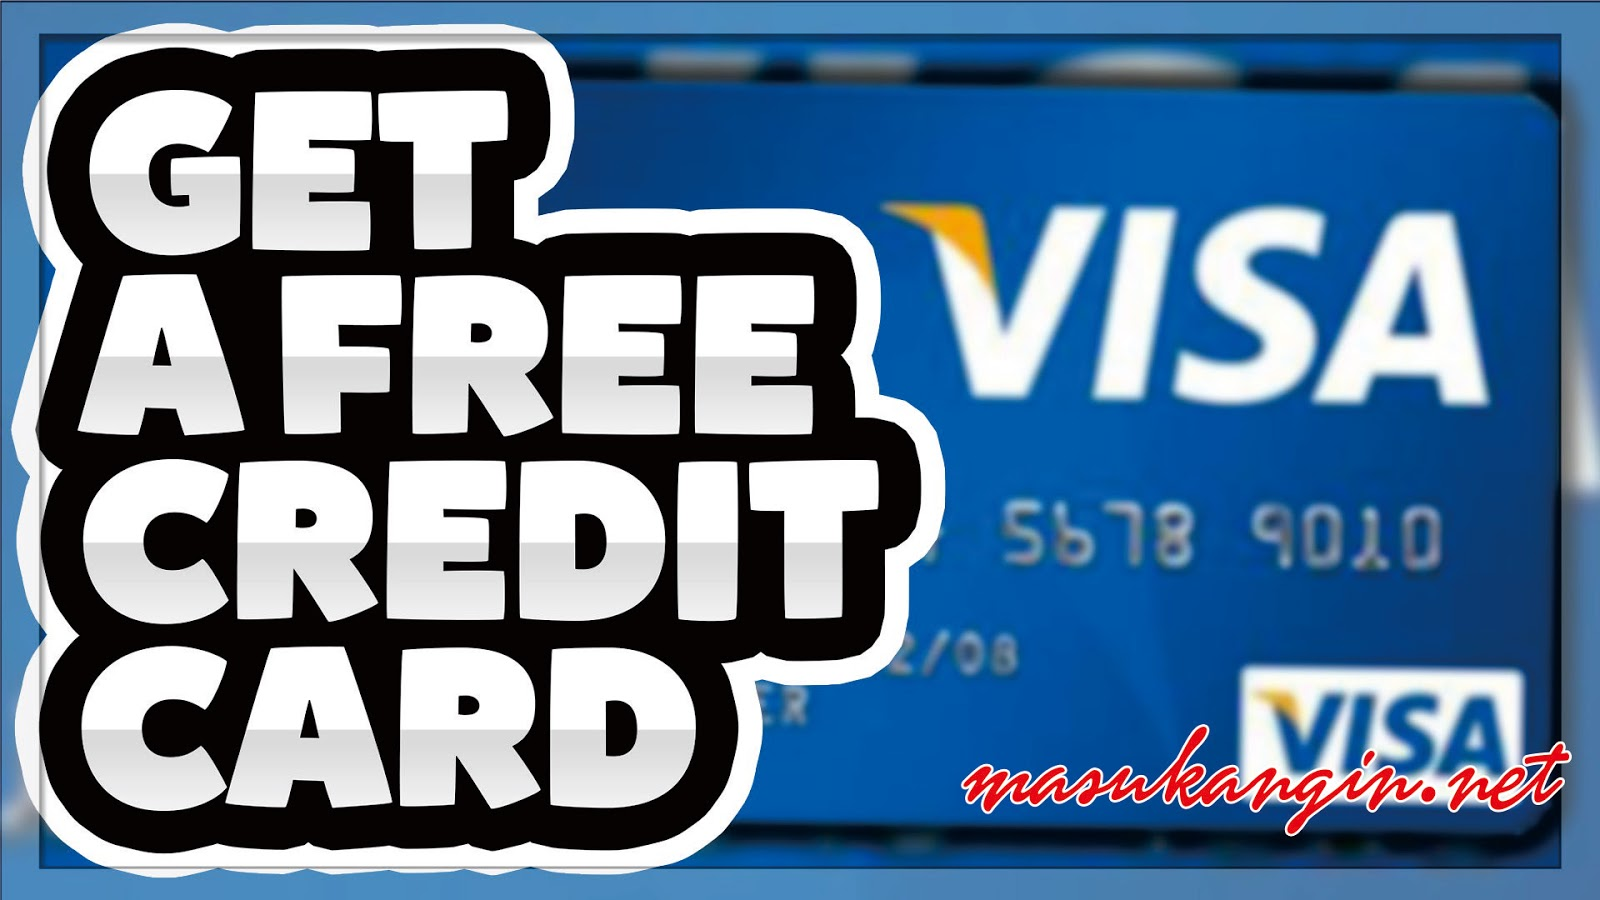 how to get free visa credit card numbers as the valid ones - Free Visa Credit Card Numbers That Work